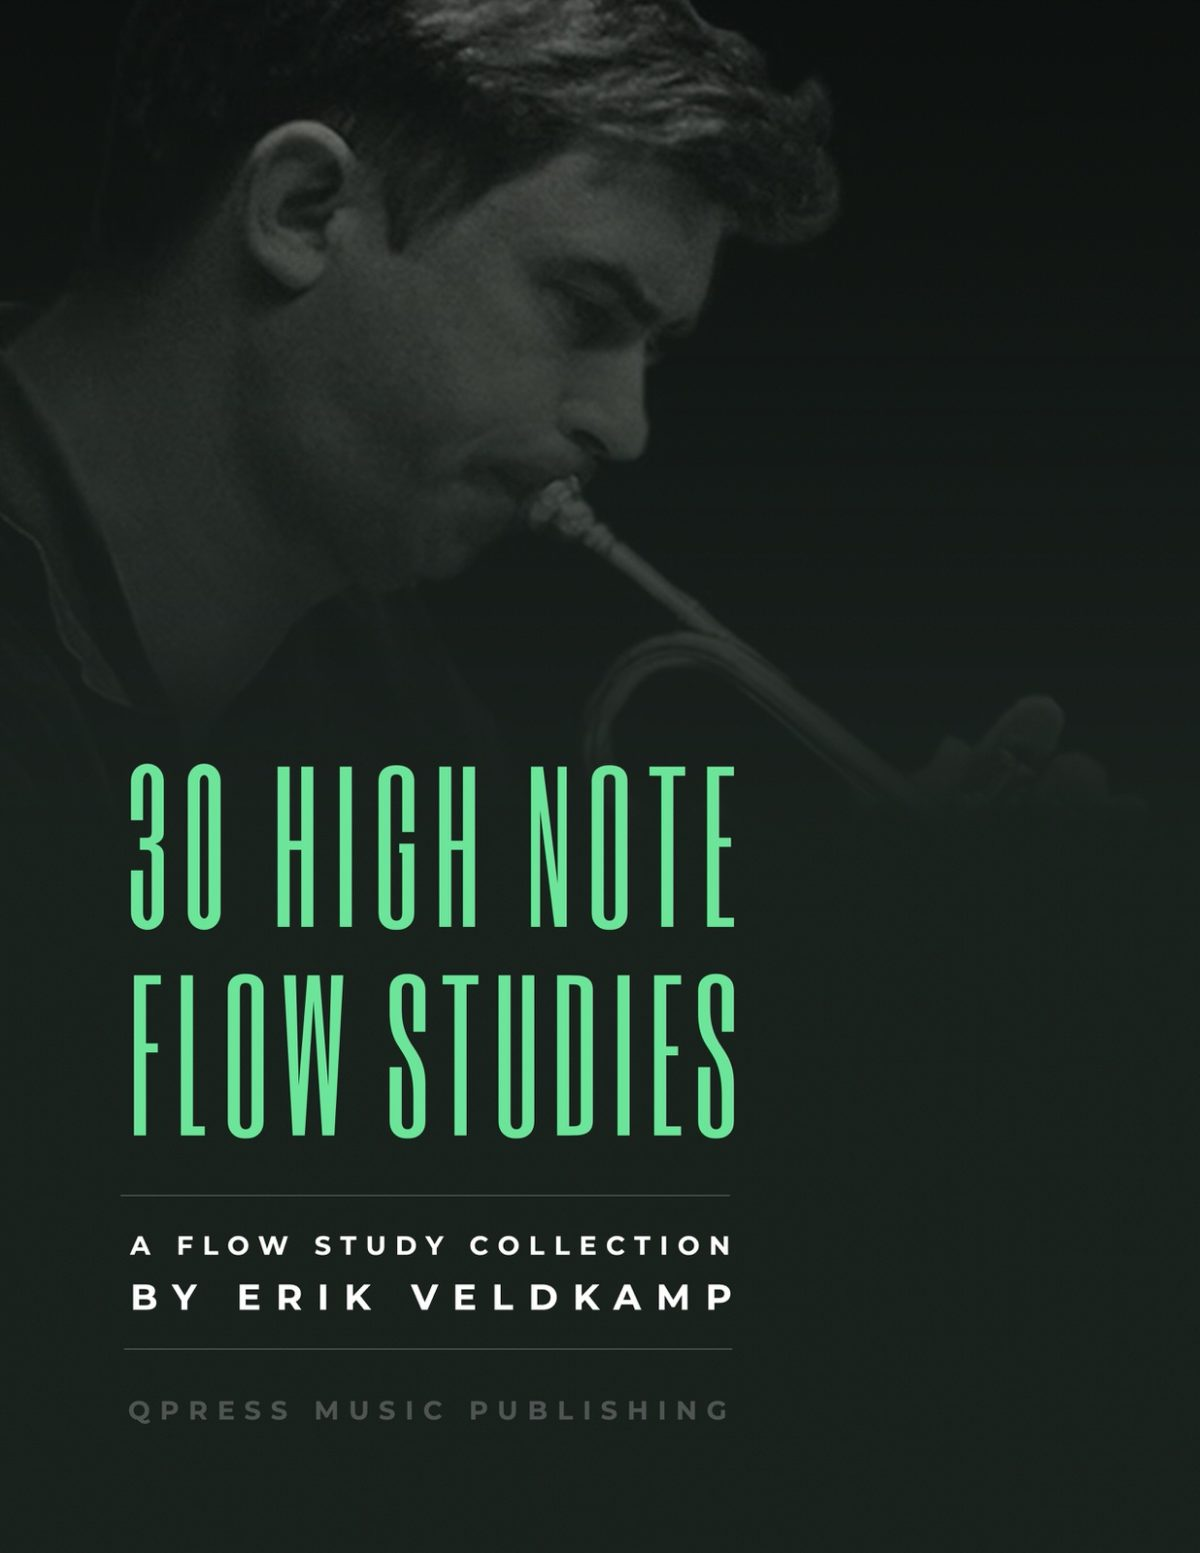 Veldkamp, 30 High Note Flow Studies-p01